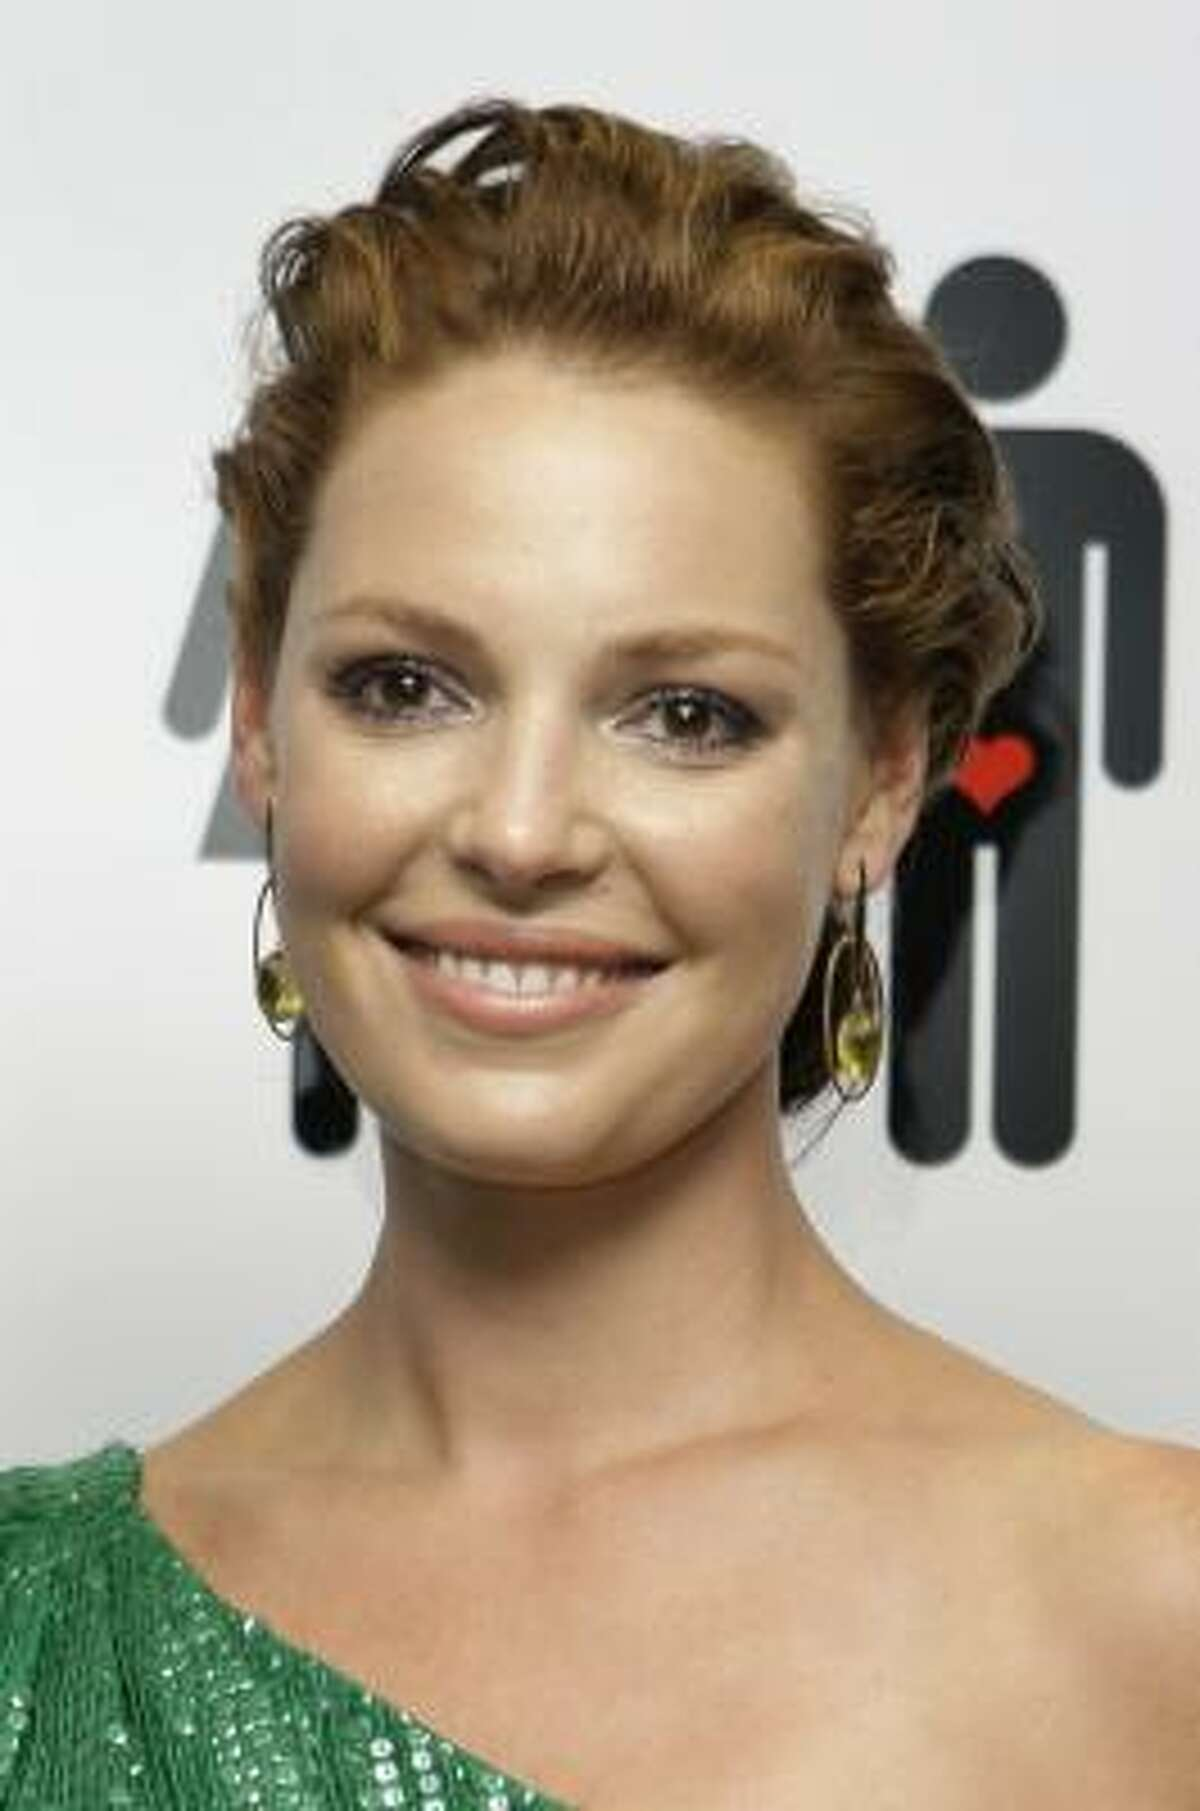 Katherine Heigl announced she and her husband have adopted a little girl.